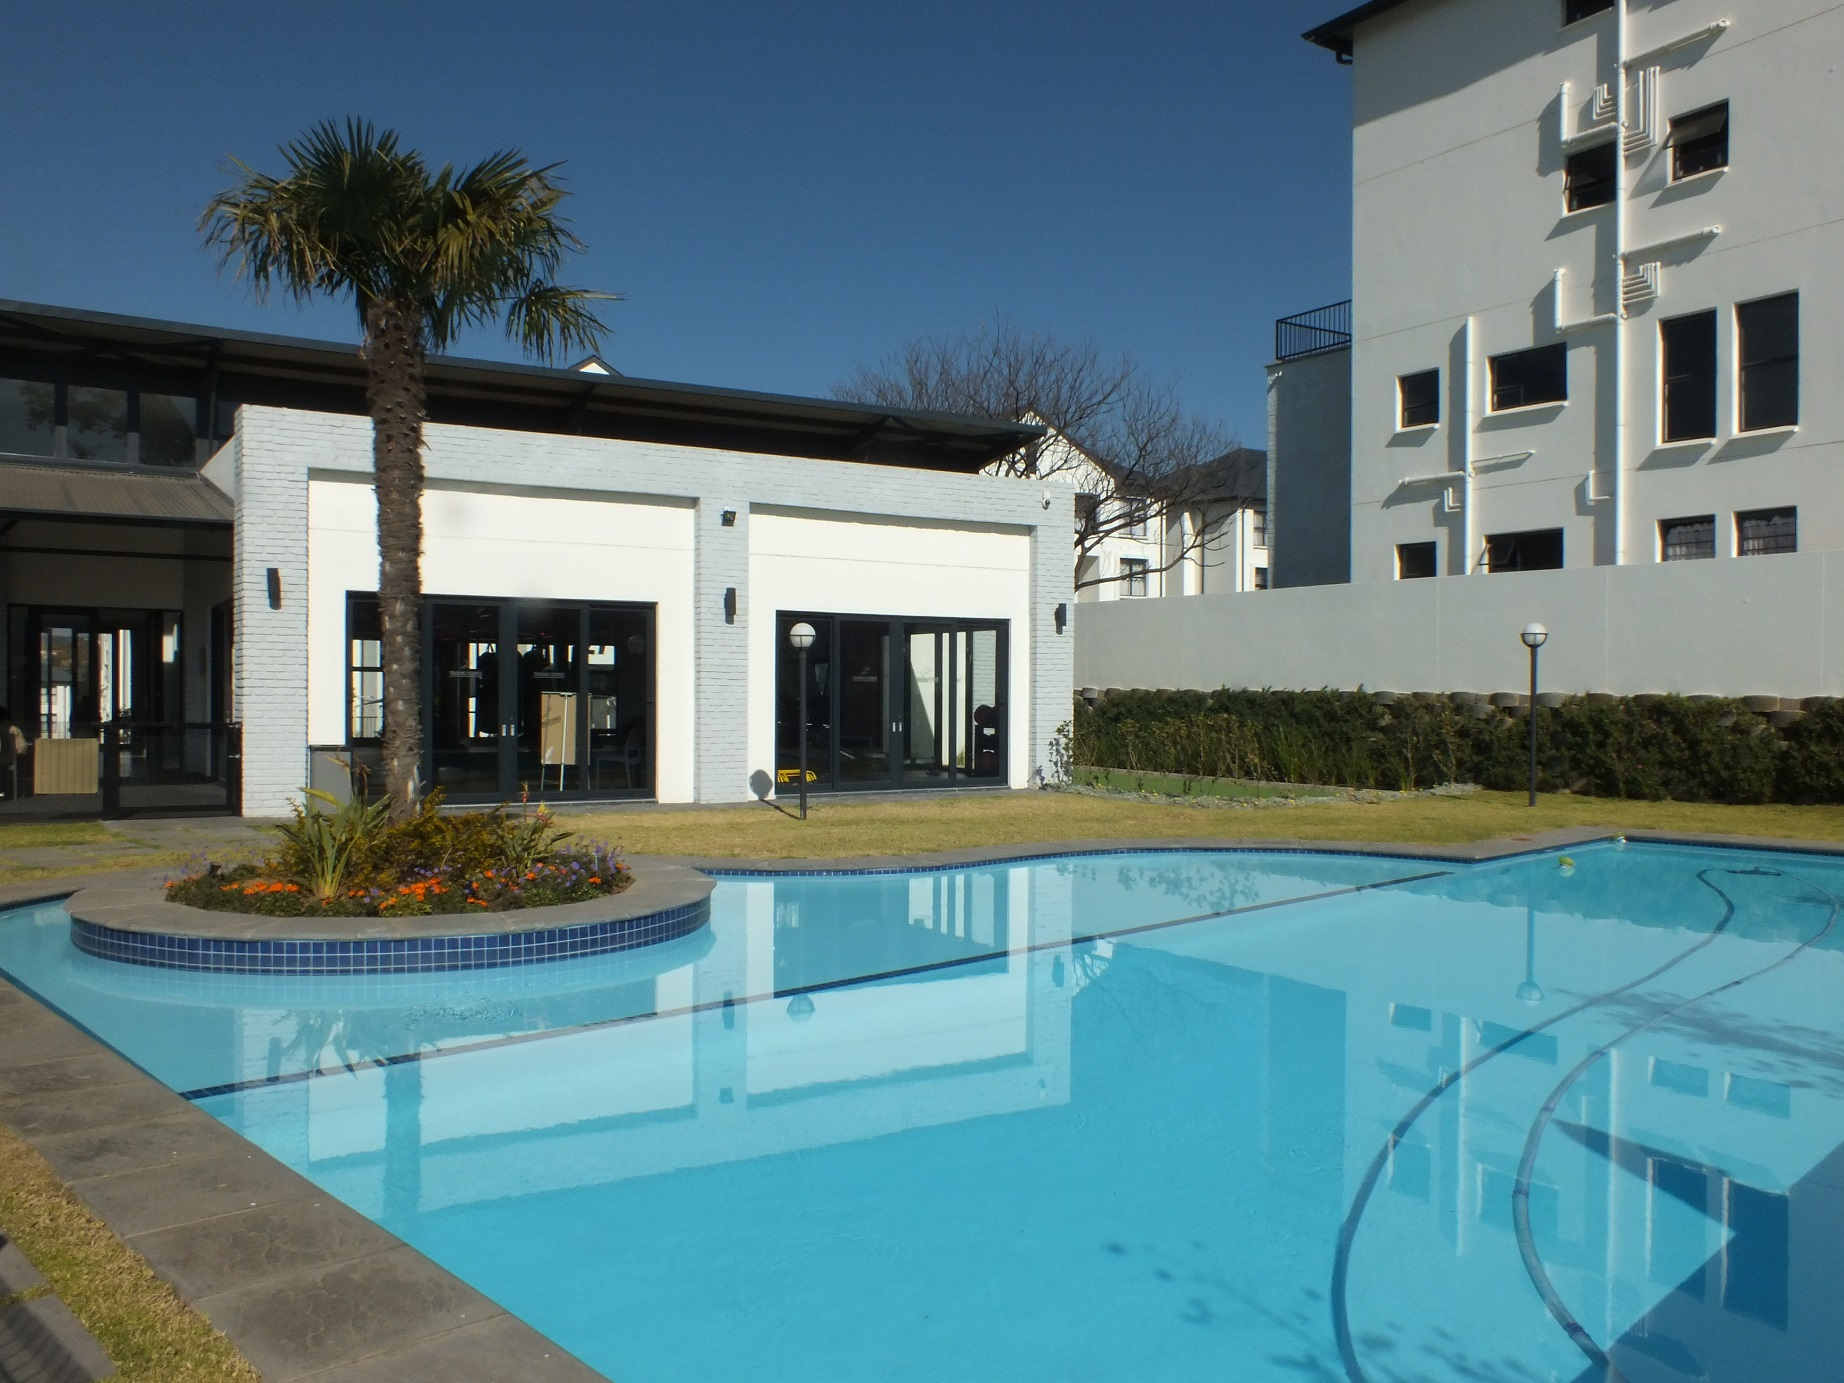 1 Bedroom Apartment for sale in Bryanston ENT0067747 : photo#10